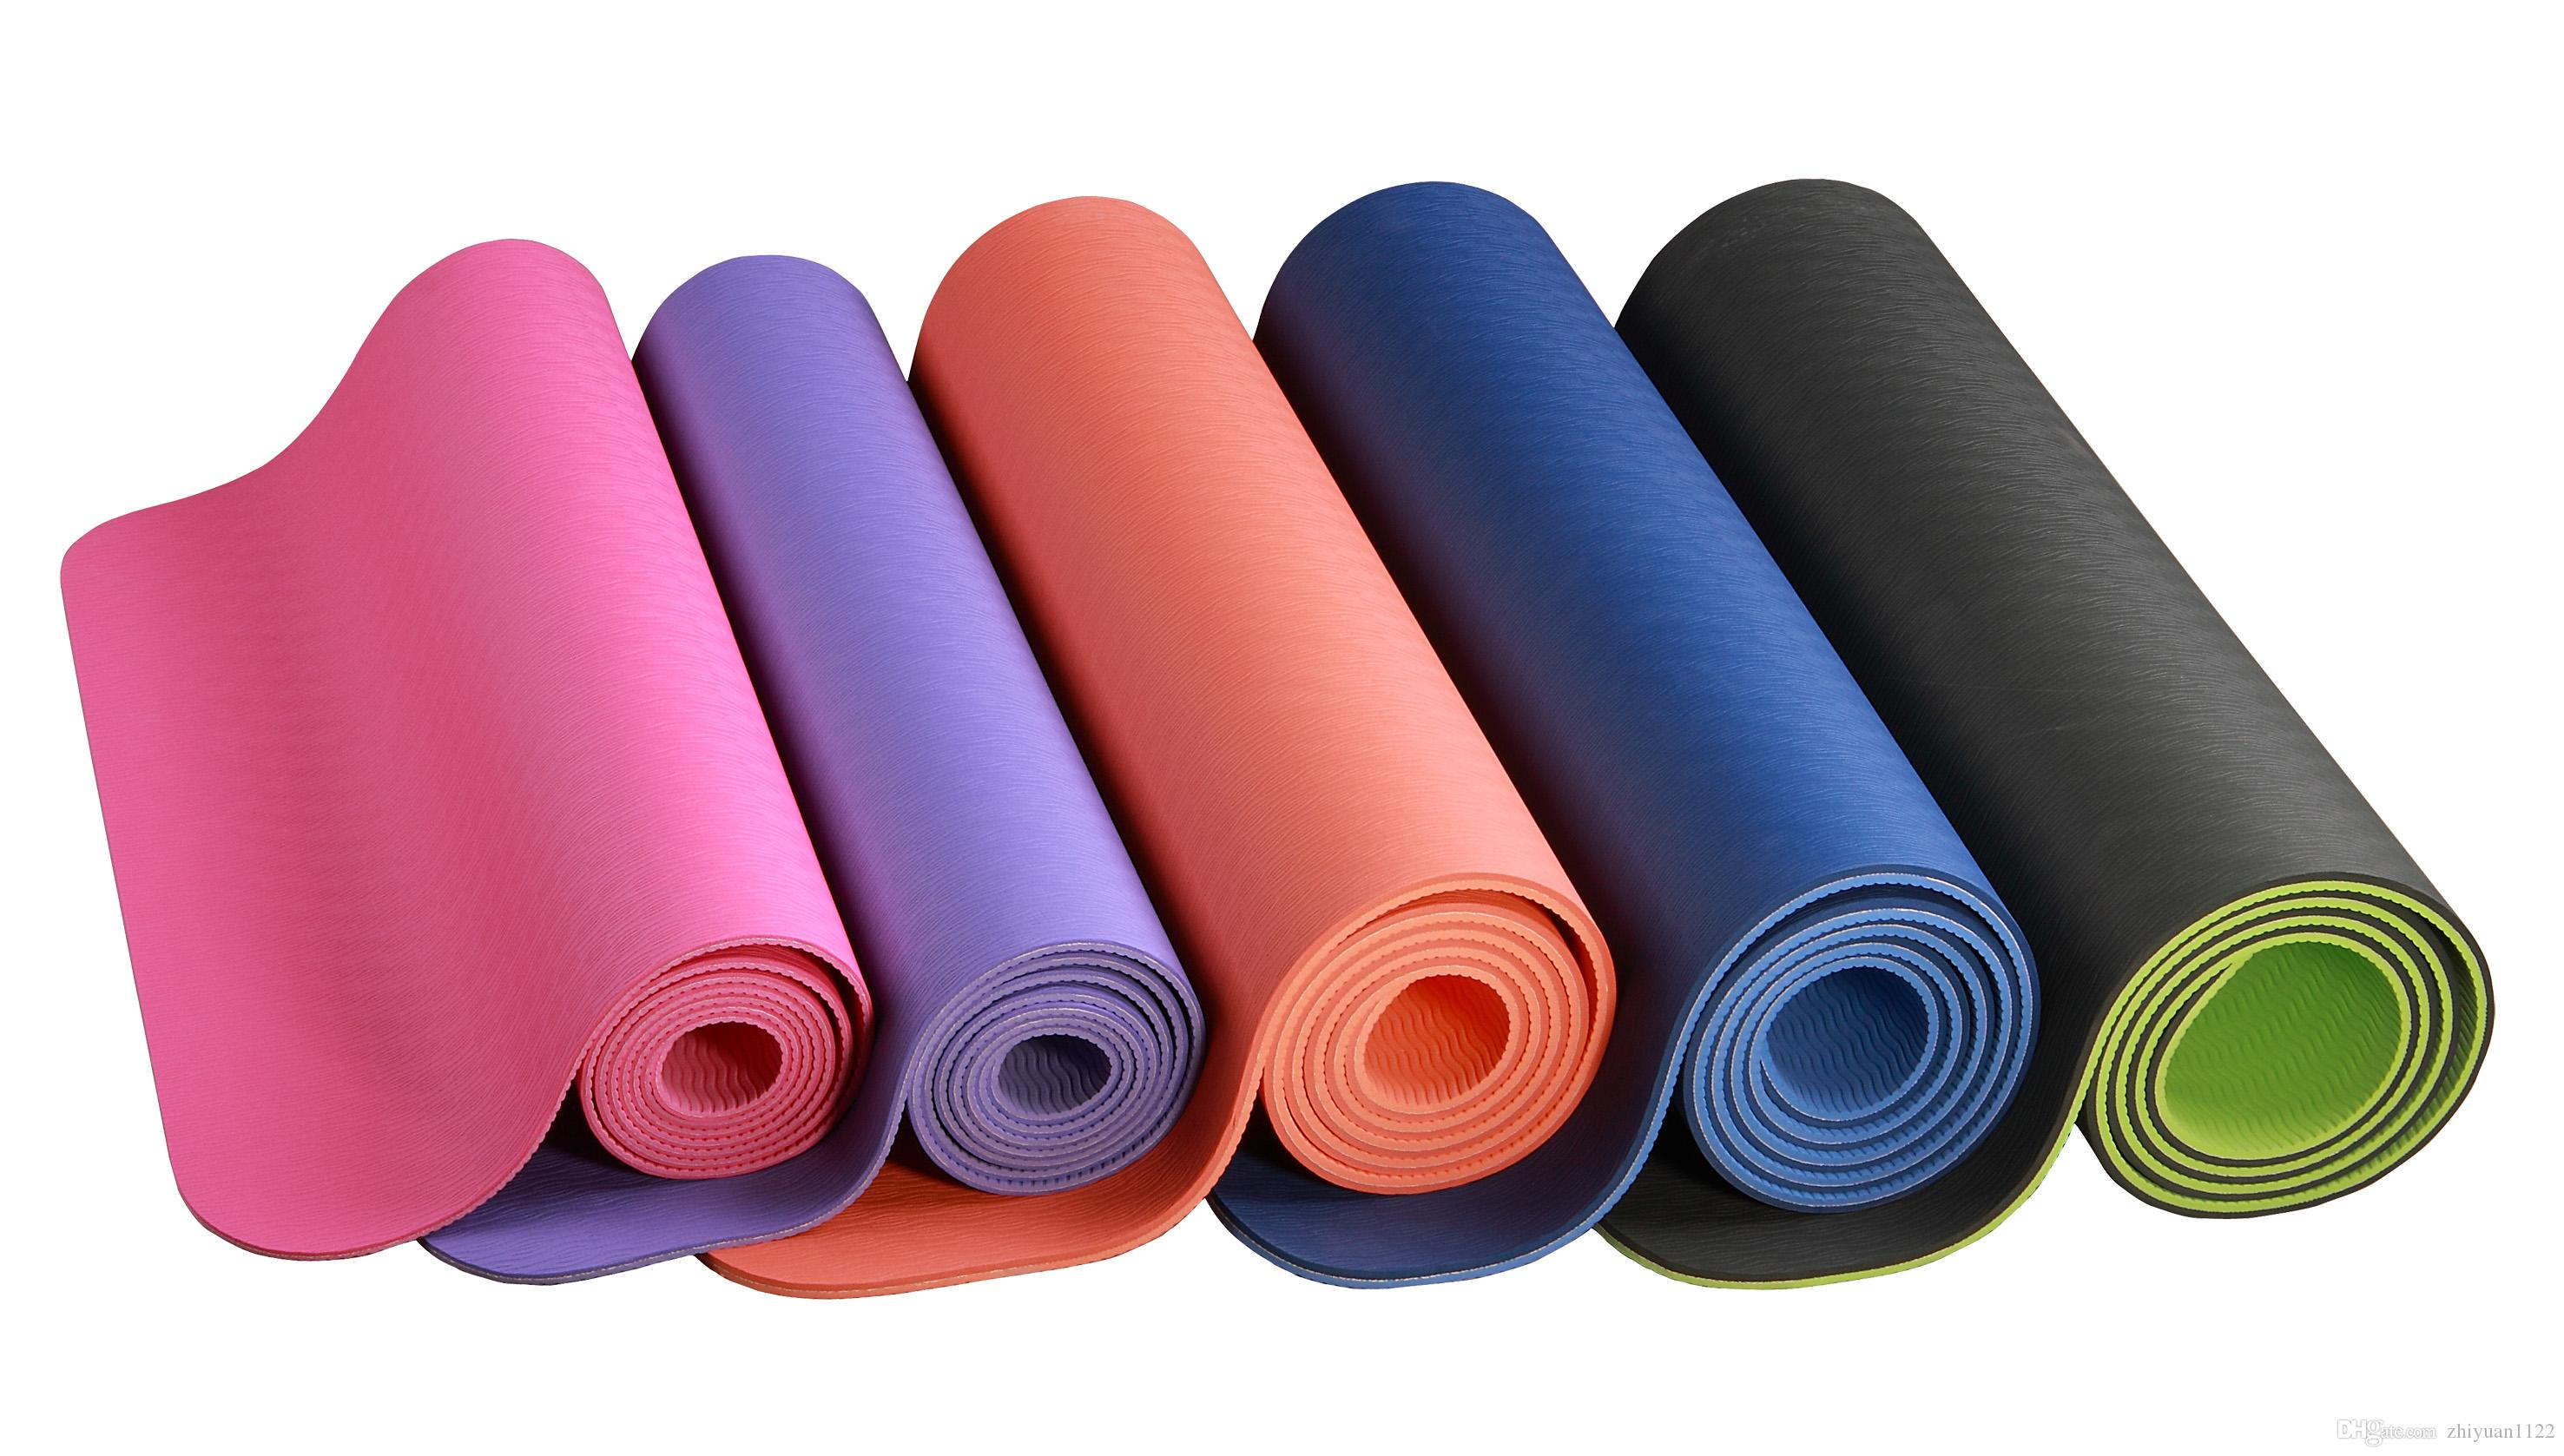 mats material clothes gifts image best yoga mat accessories